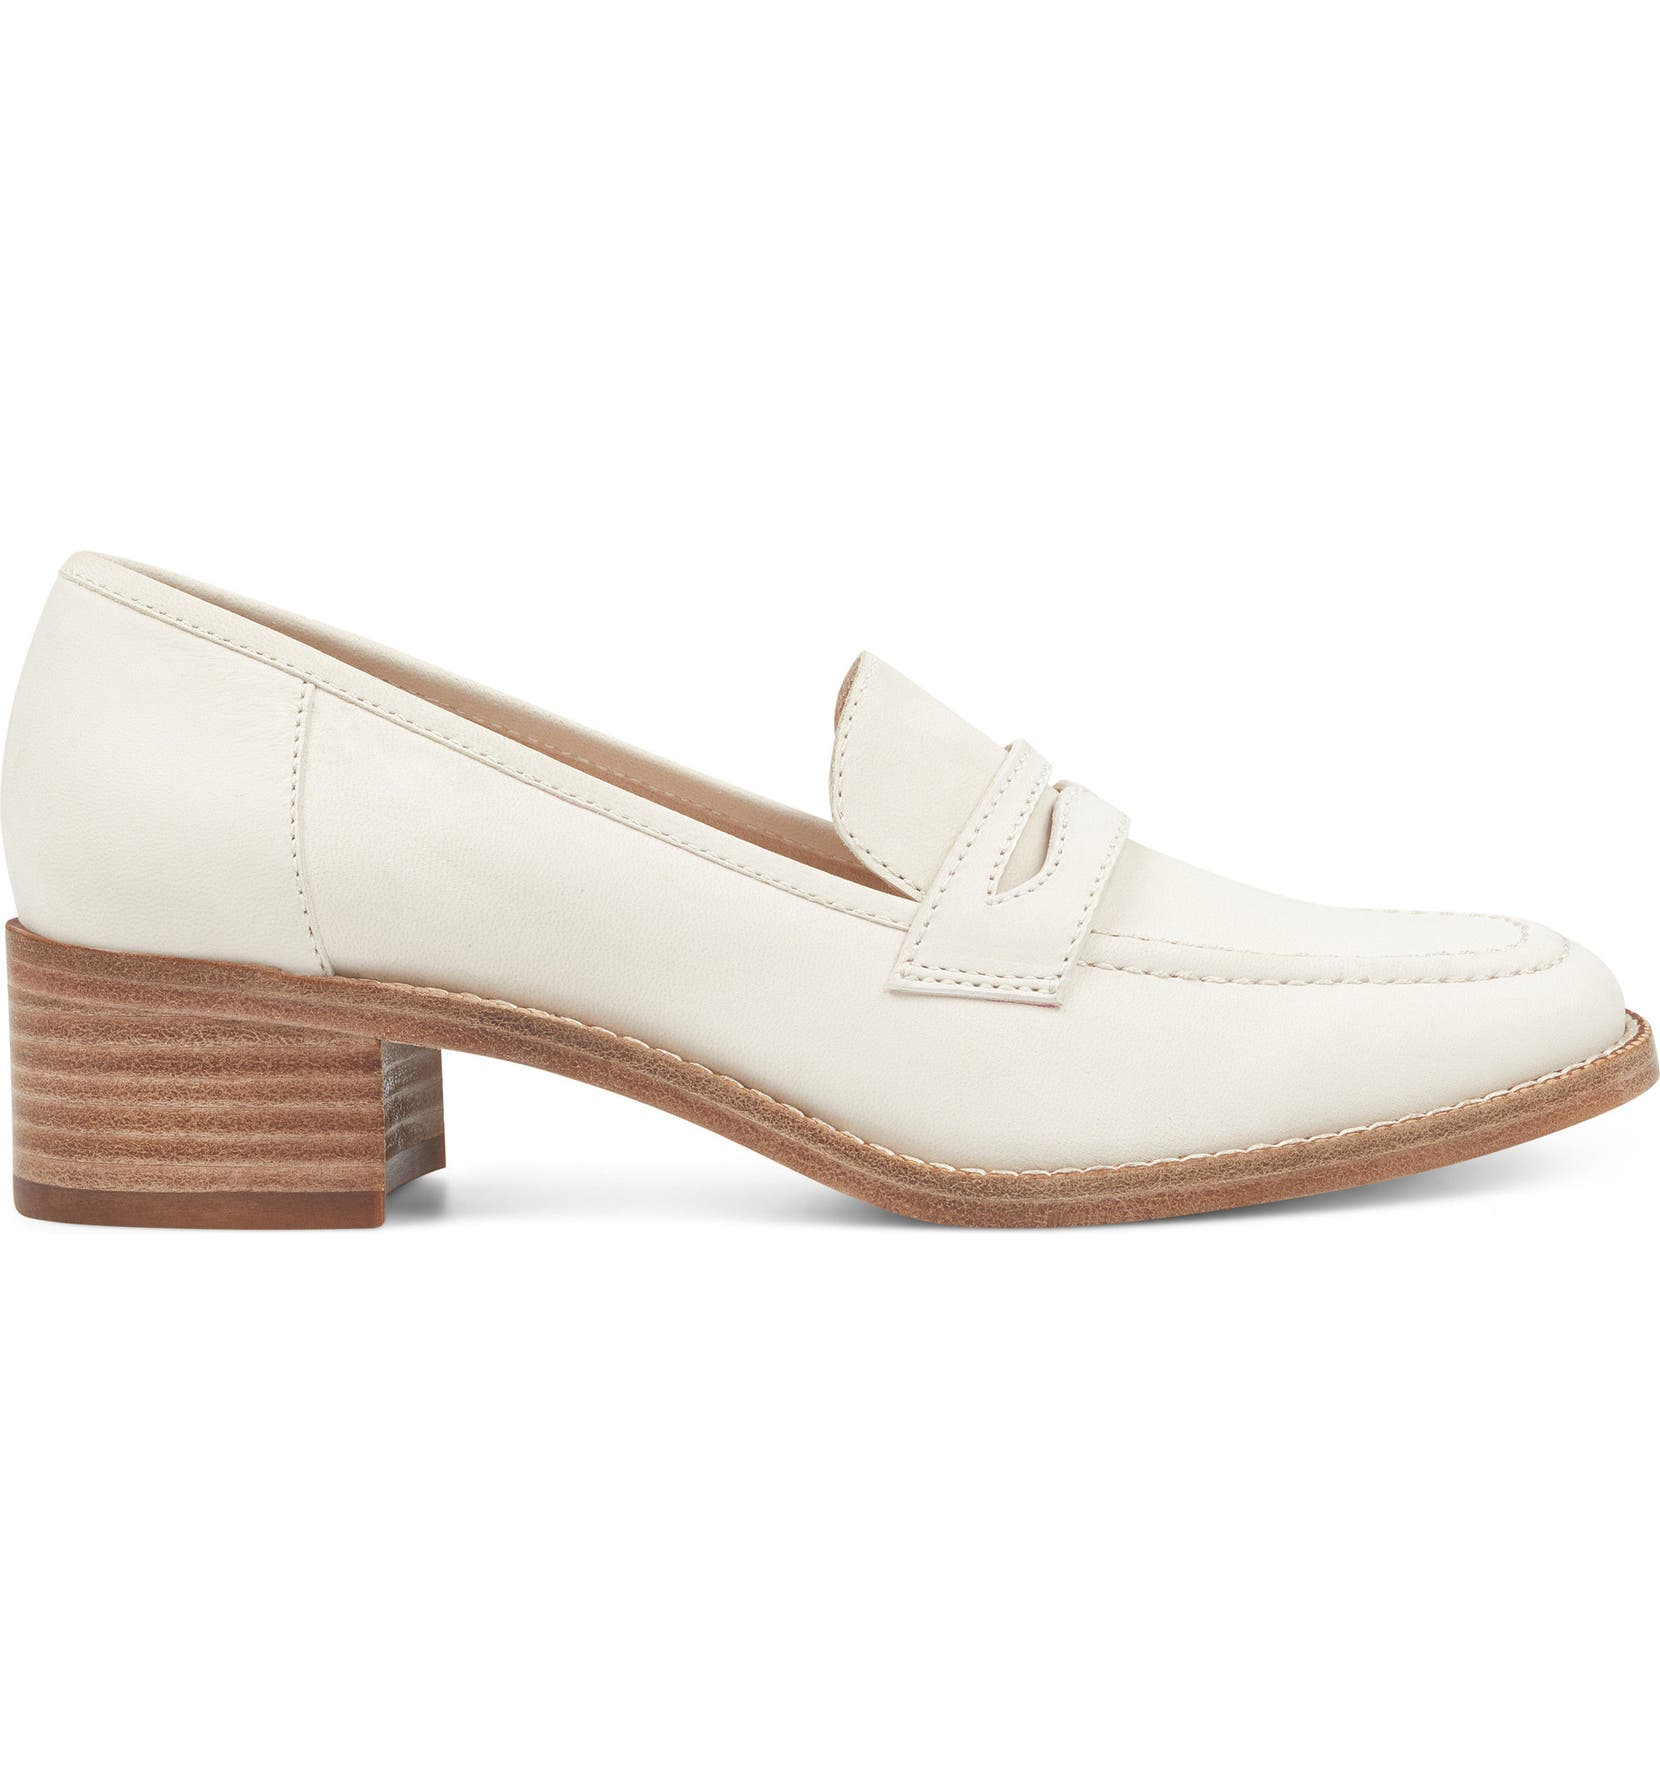 74a9e5d6088 Nine West Kimmy - 40th Anniversary Capsule Collection Penny Loafer (Women)